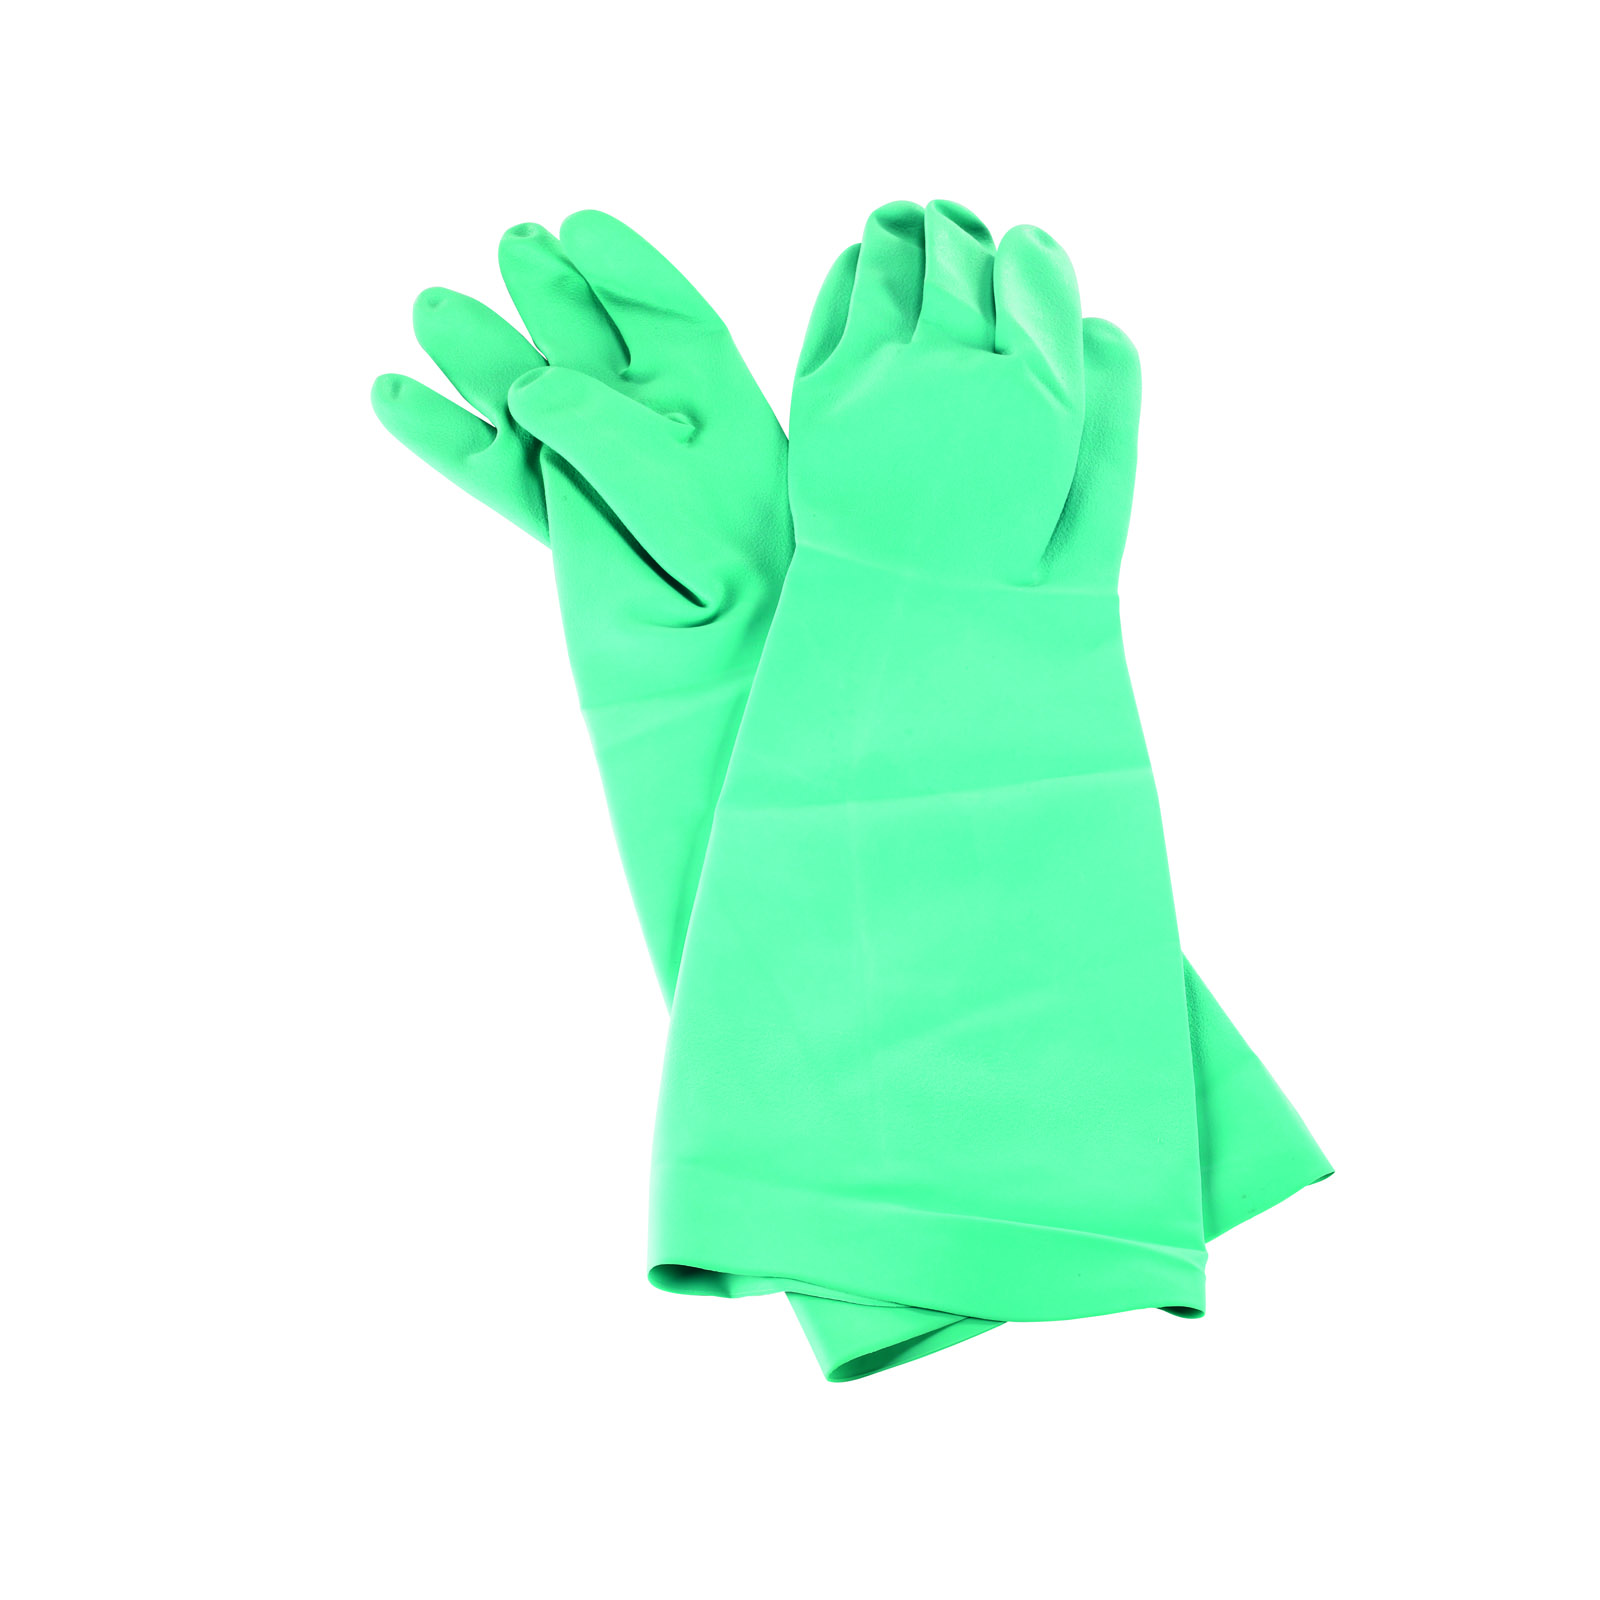 San Jamar 19NU-XL gloves, dishwashing / cleaning